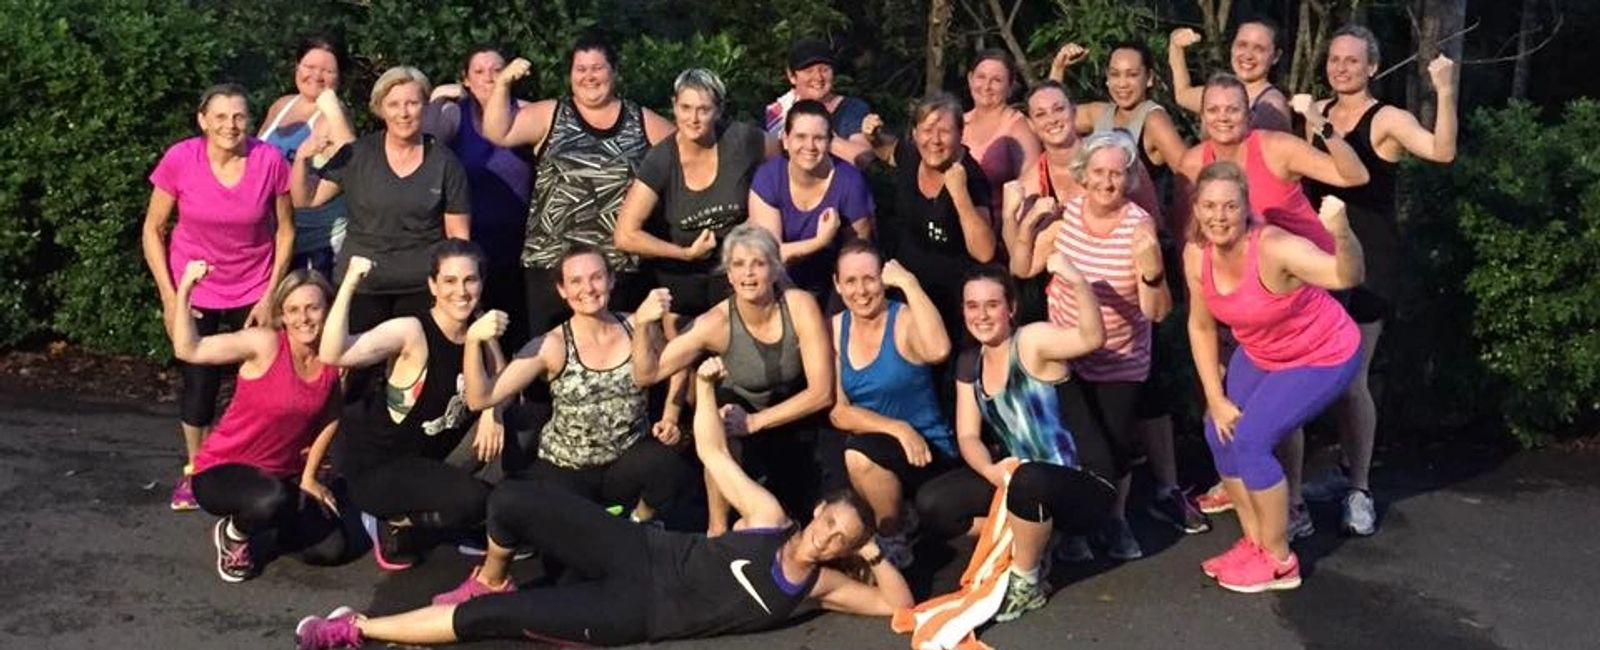 Fitness challenge boot camp bunya brisbane exercise boxing samford personal training